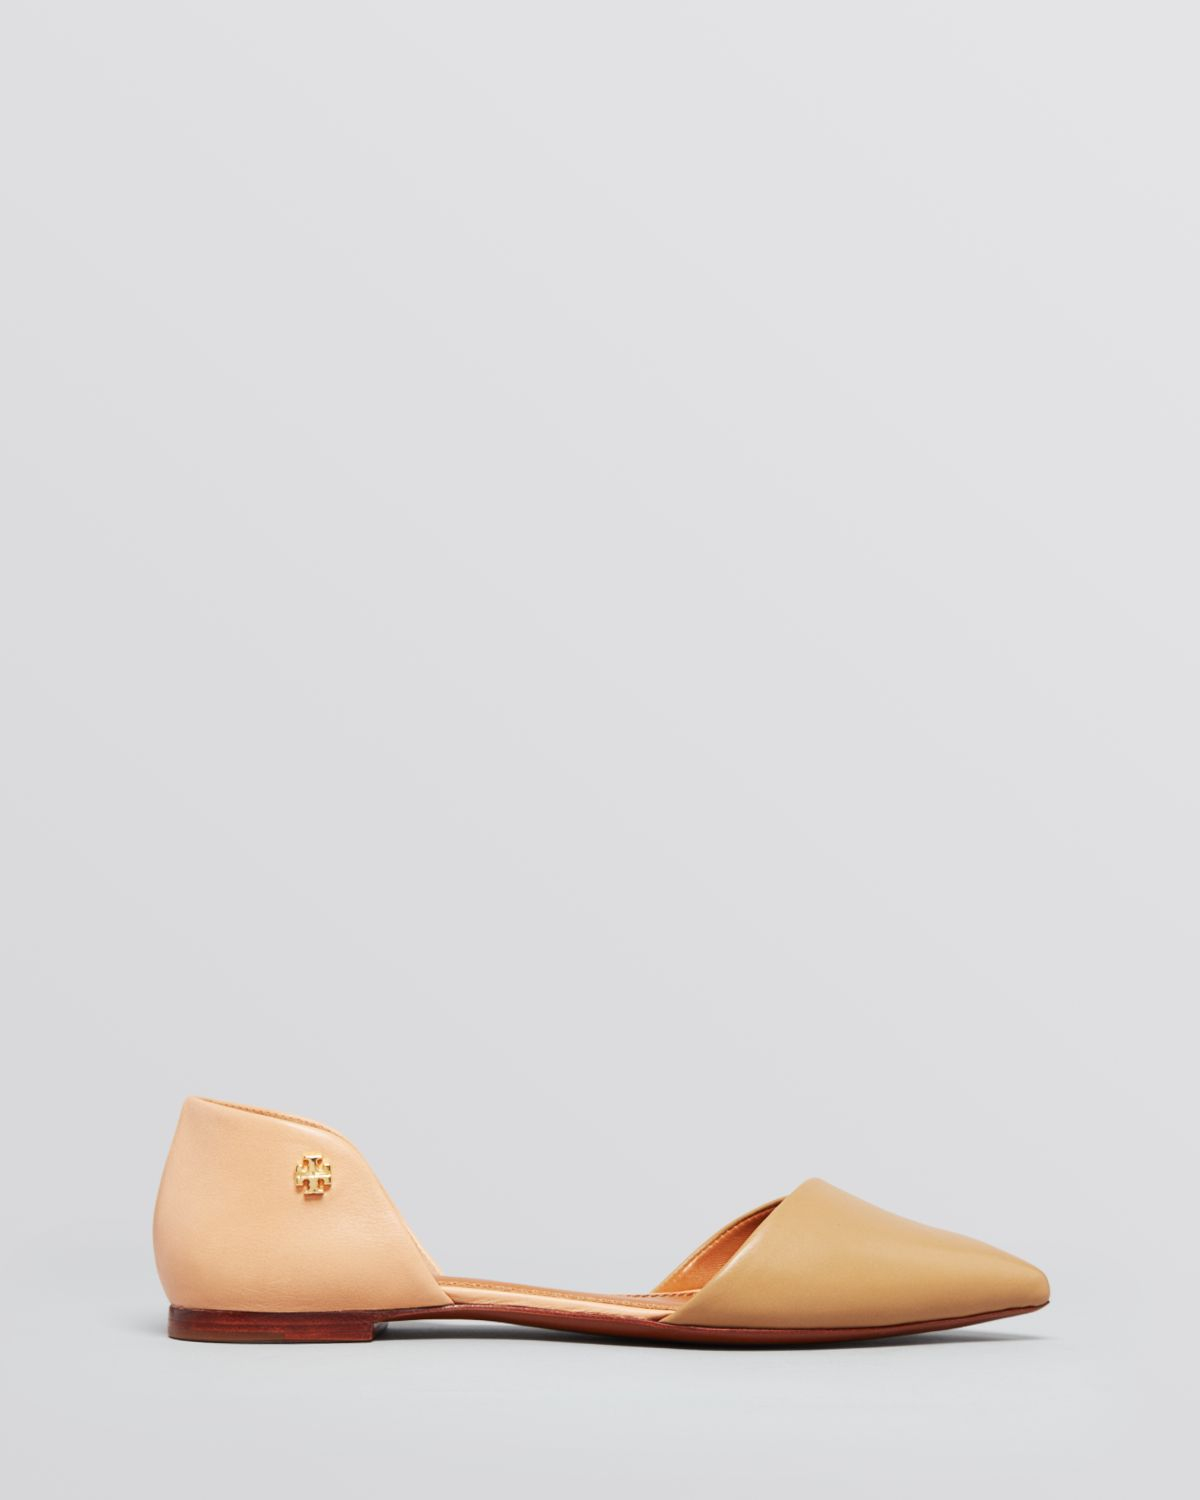 98cc3477f1c3 Lyst - Tory Burch Pointed Toe Flats Viv Dorsay in Natural